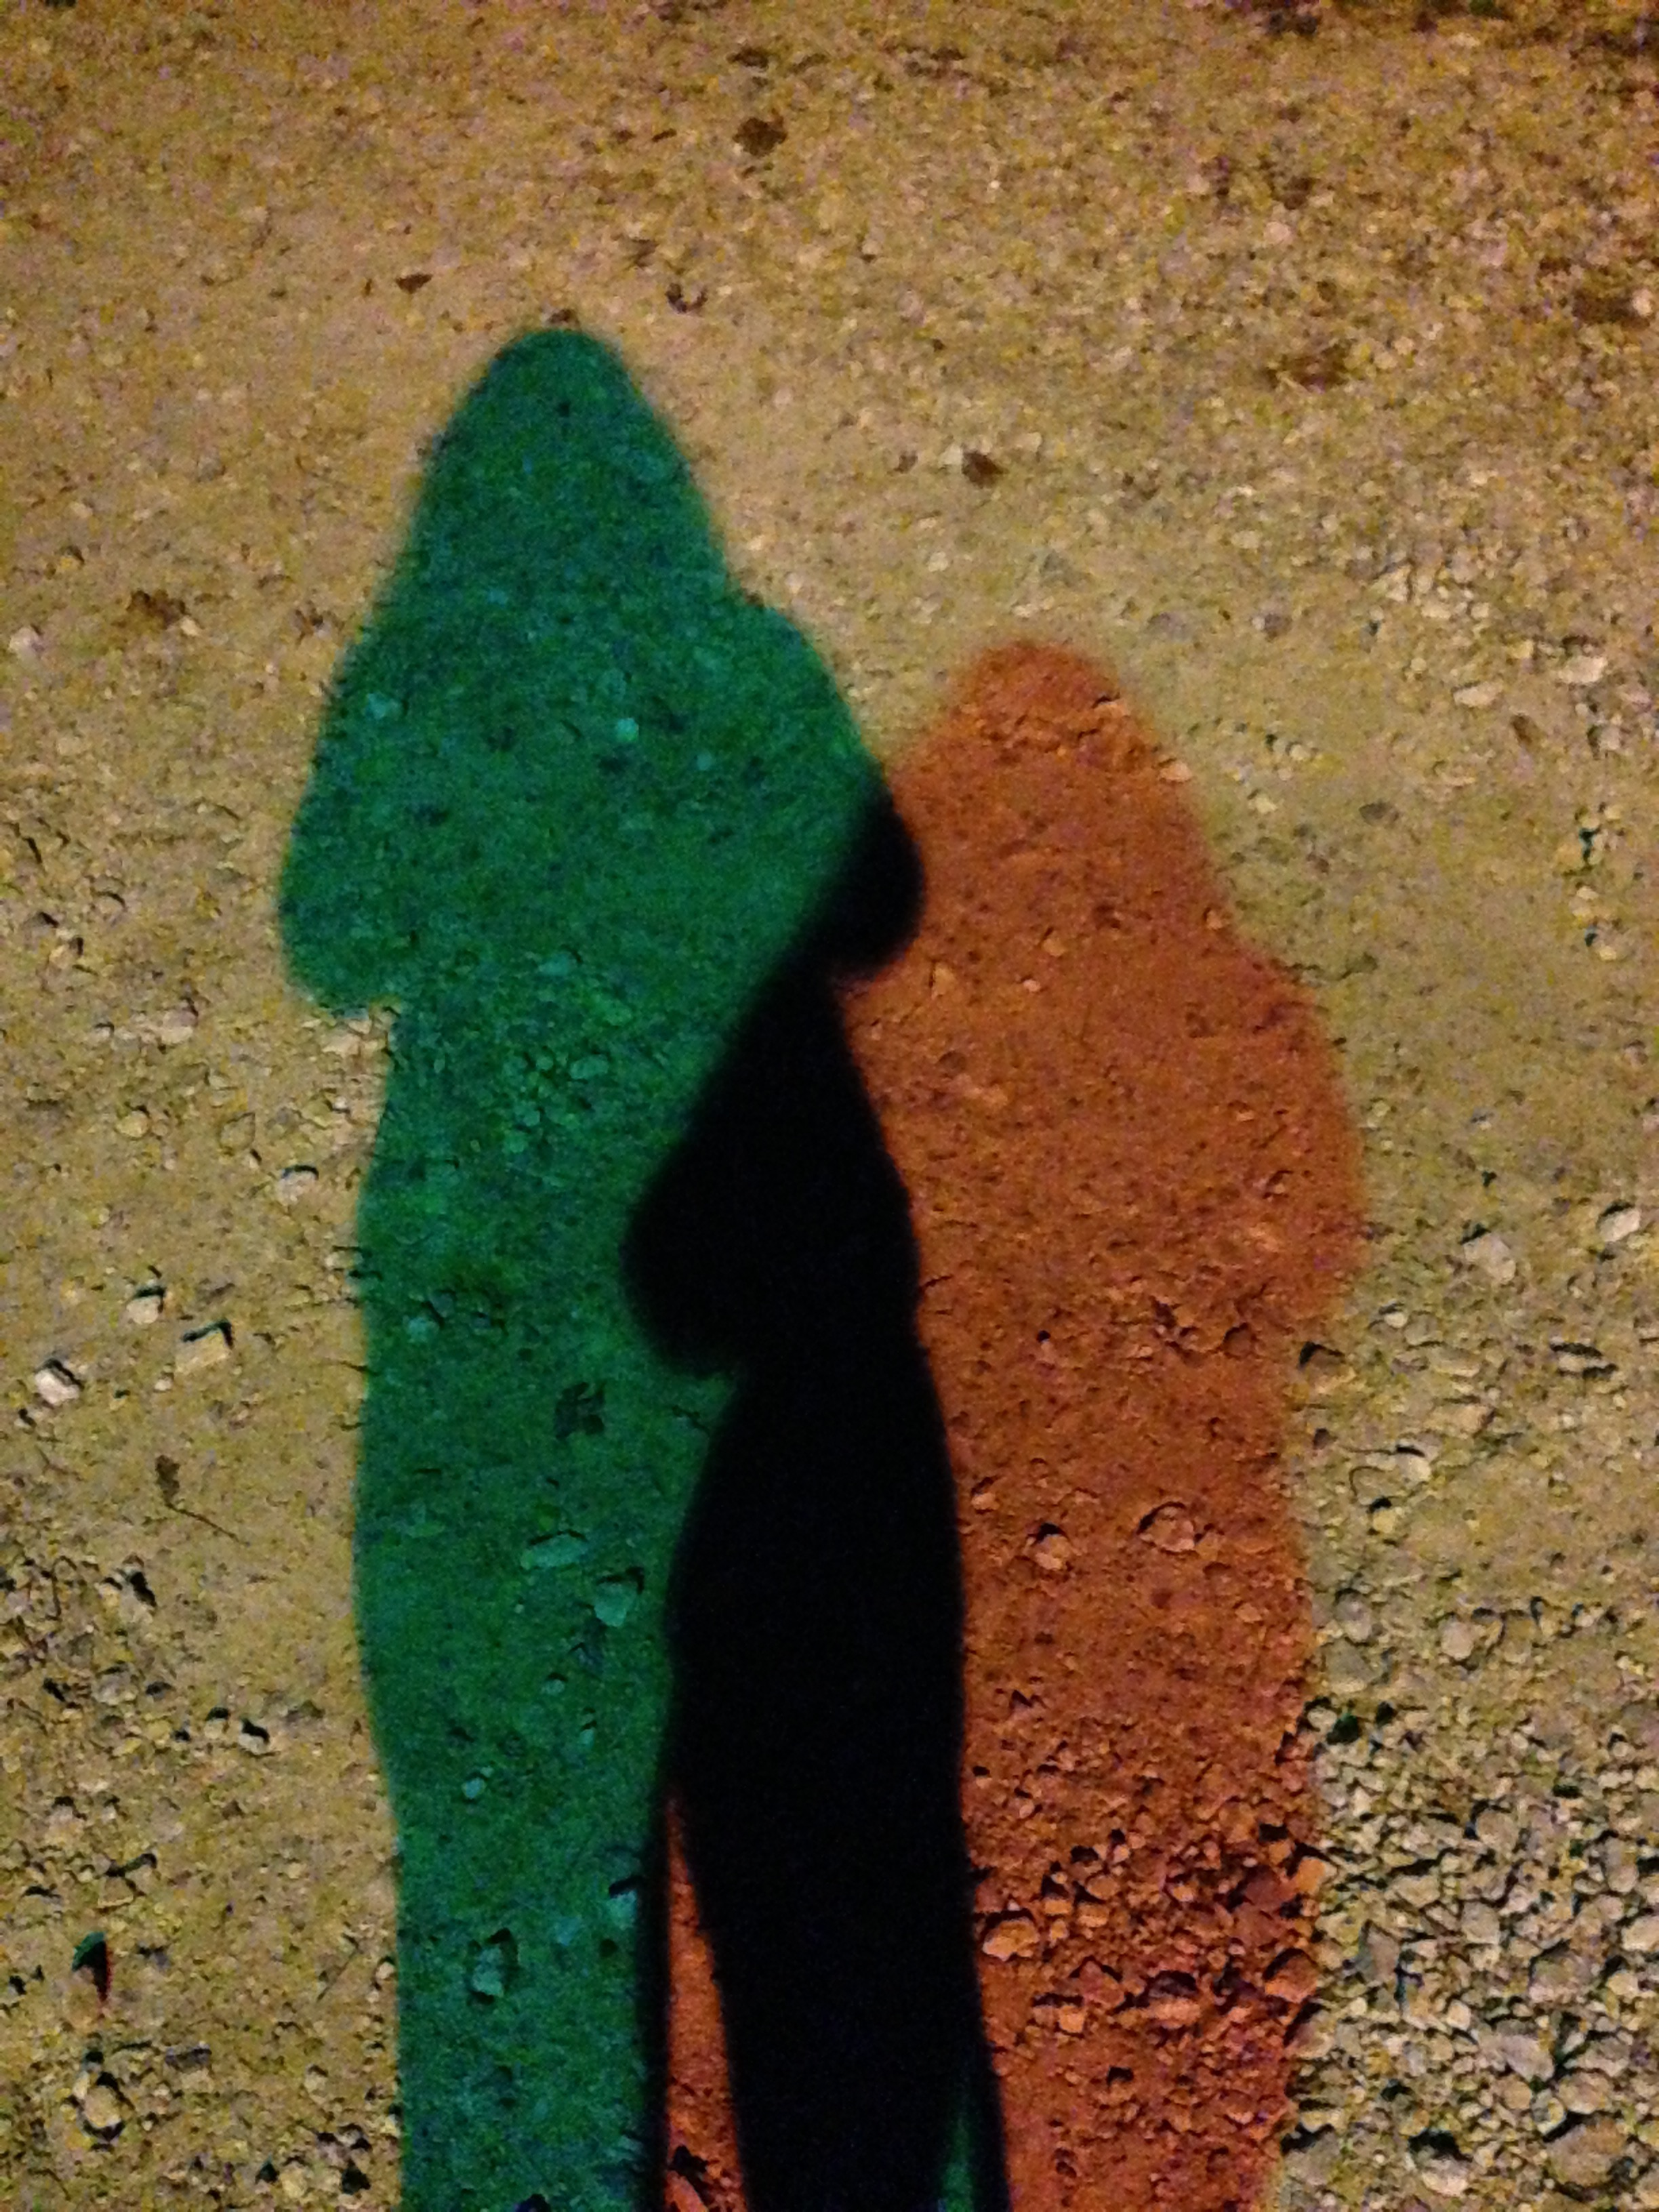 colored-shadows: two different colors of light cause two colors of shadow